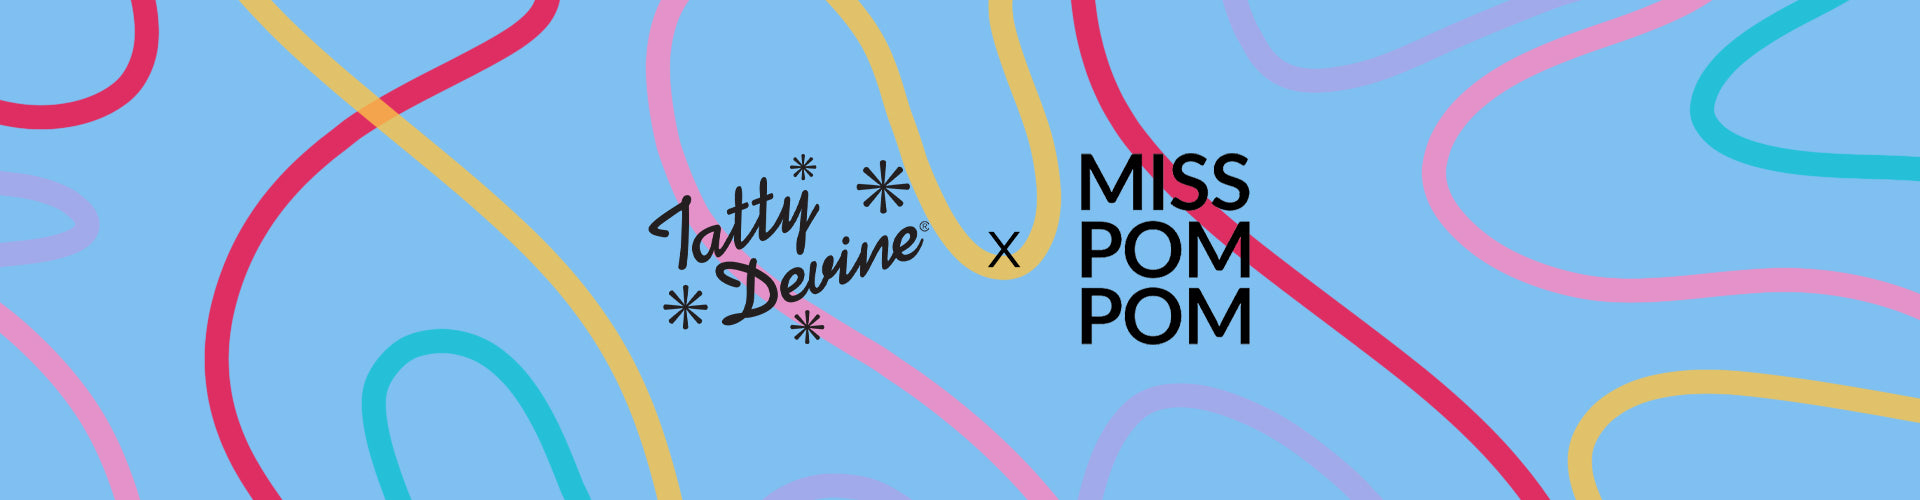 Tatty Devine X Miss Pompom